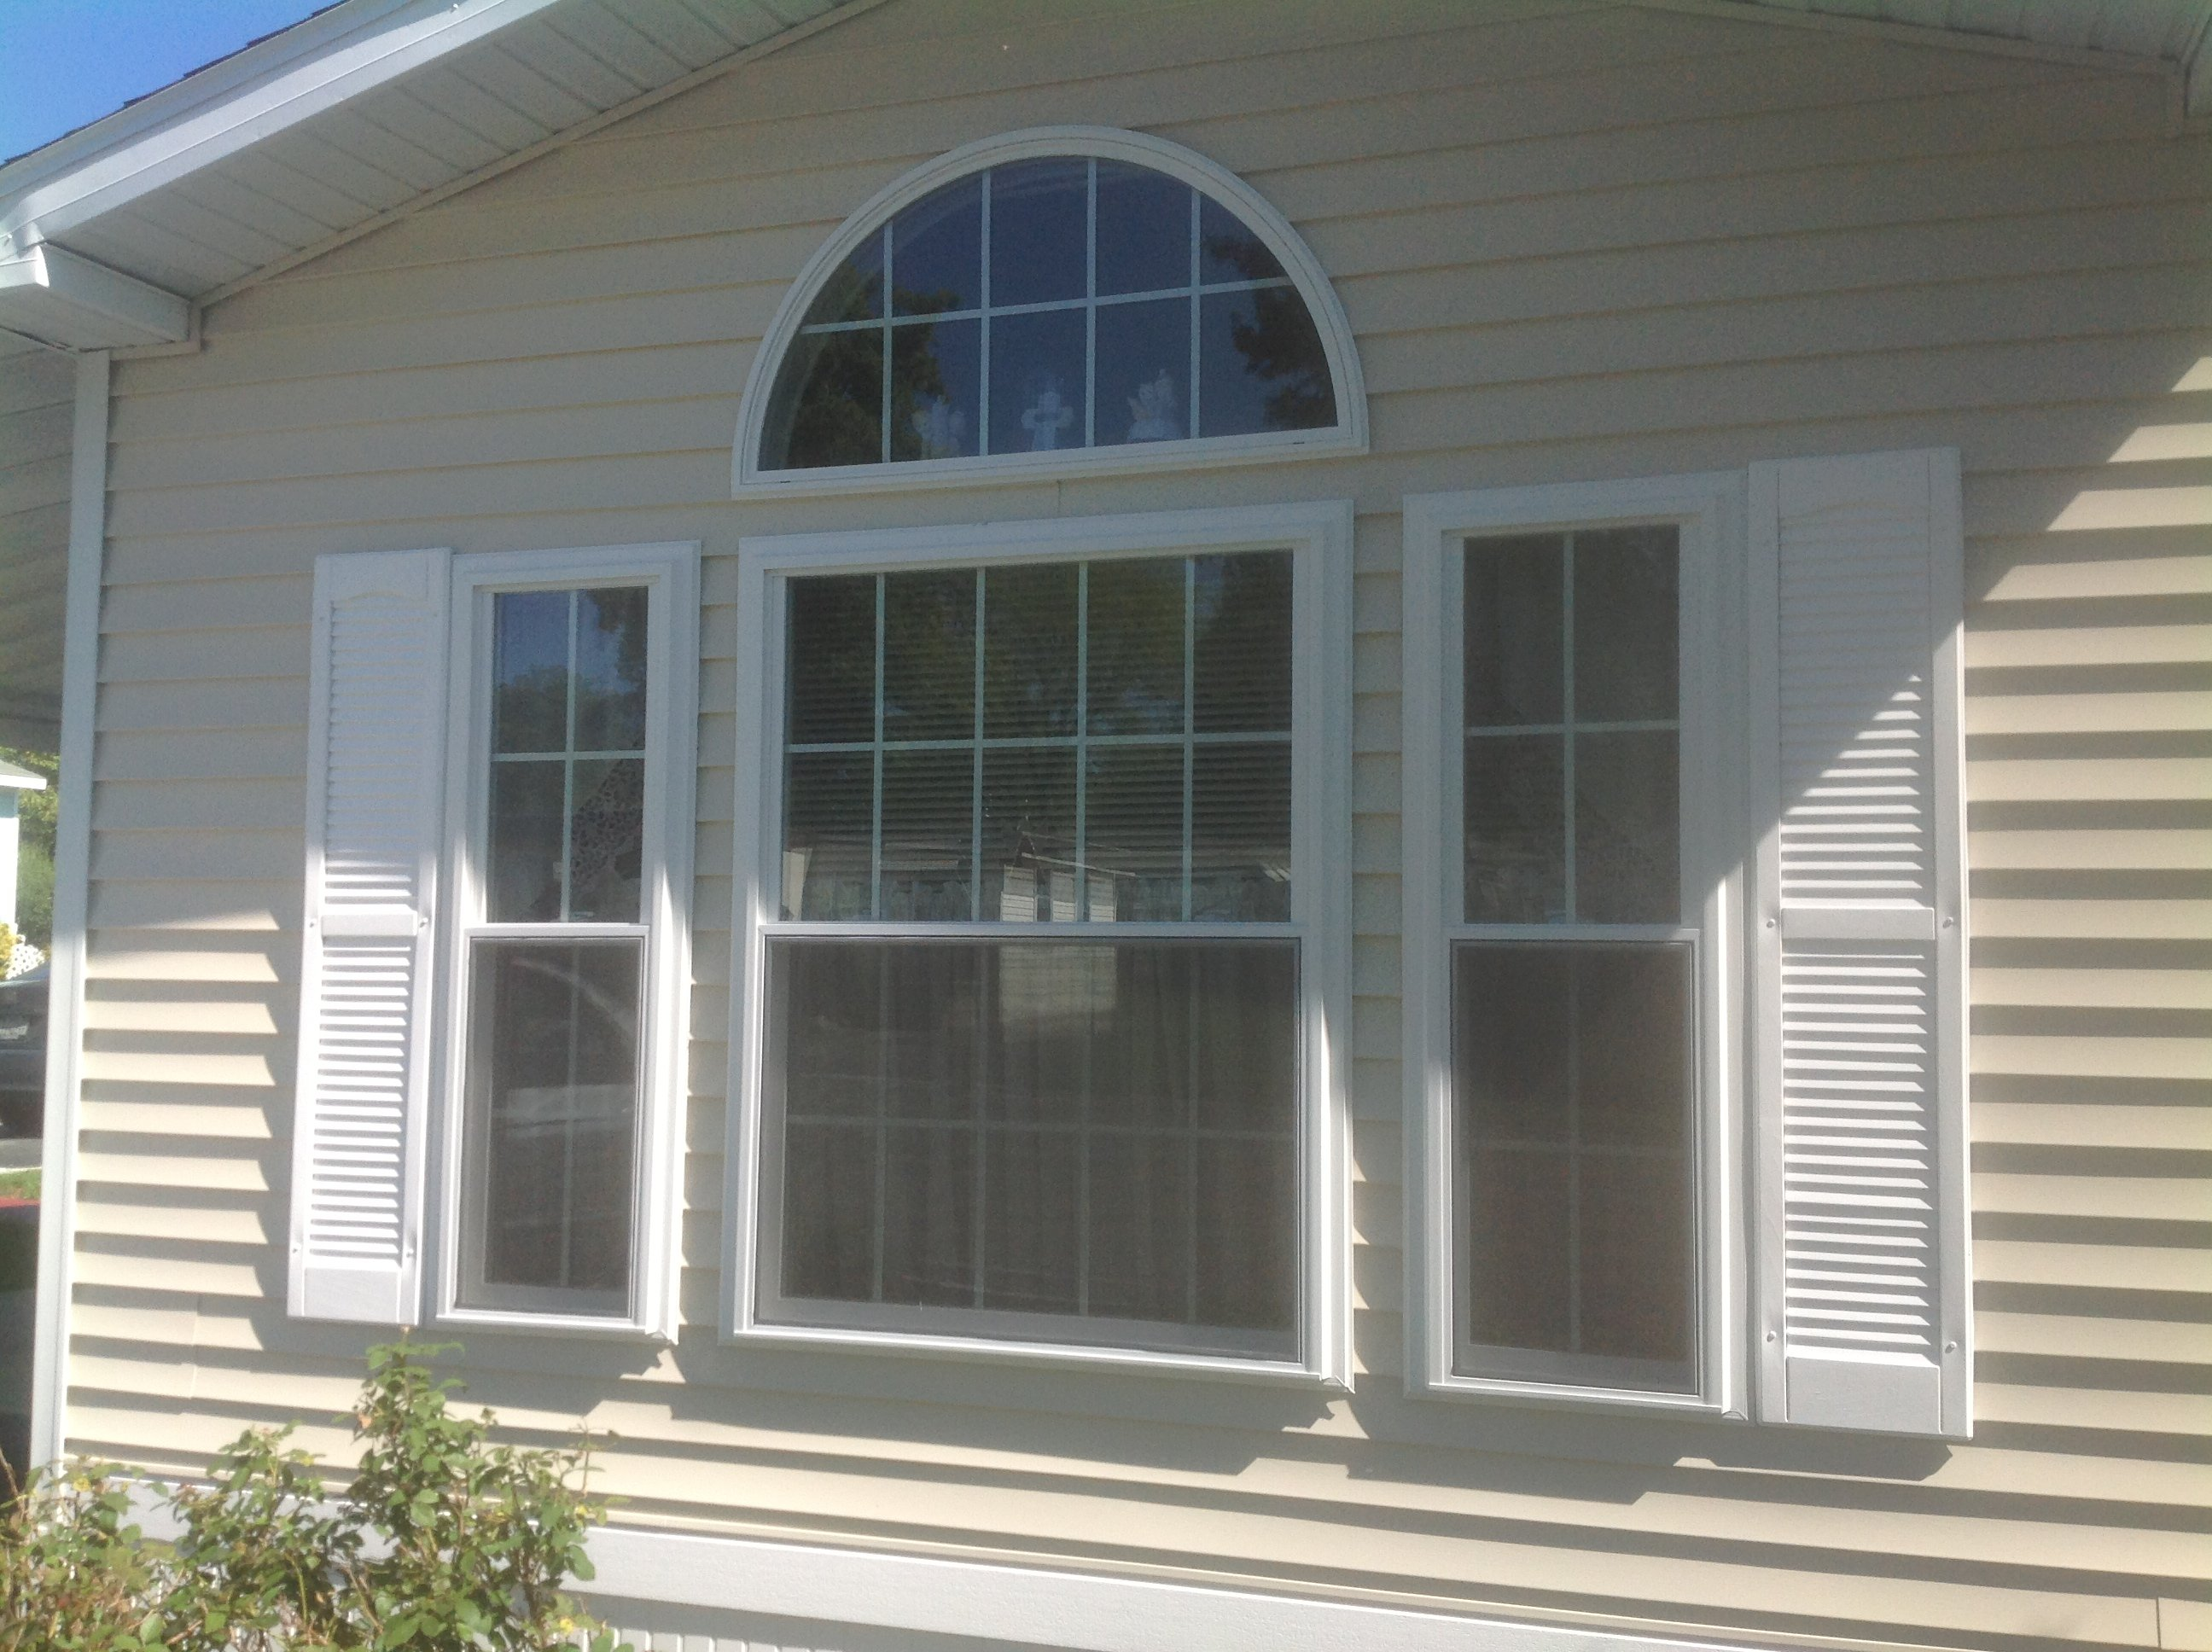 House Window Styles window styles for your home -